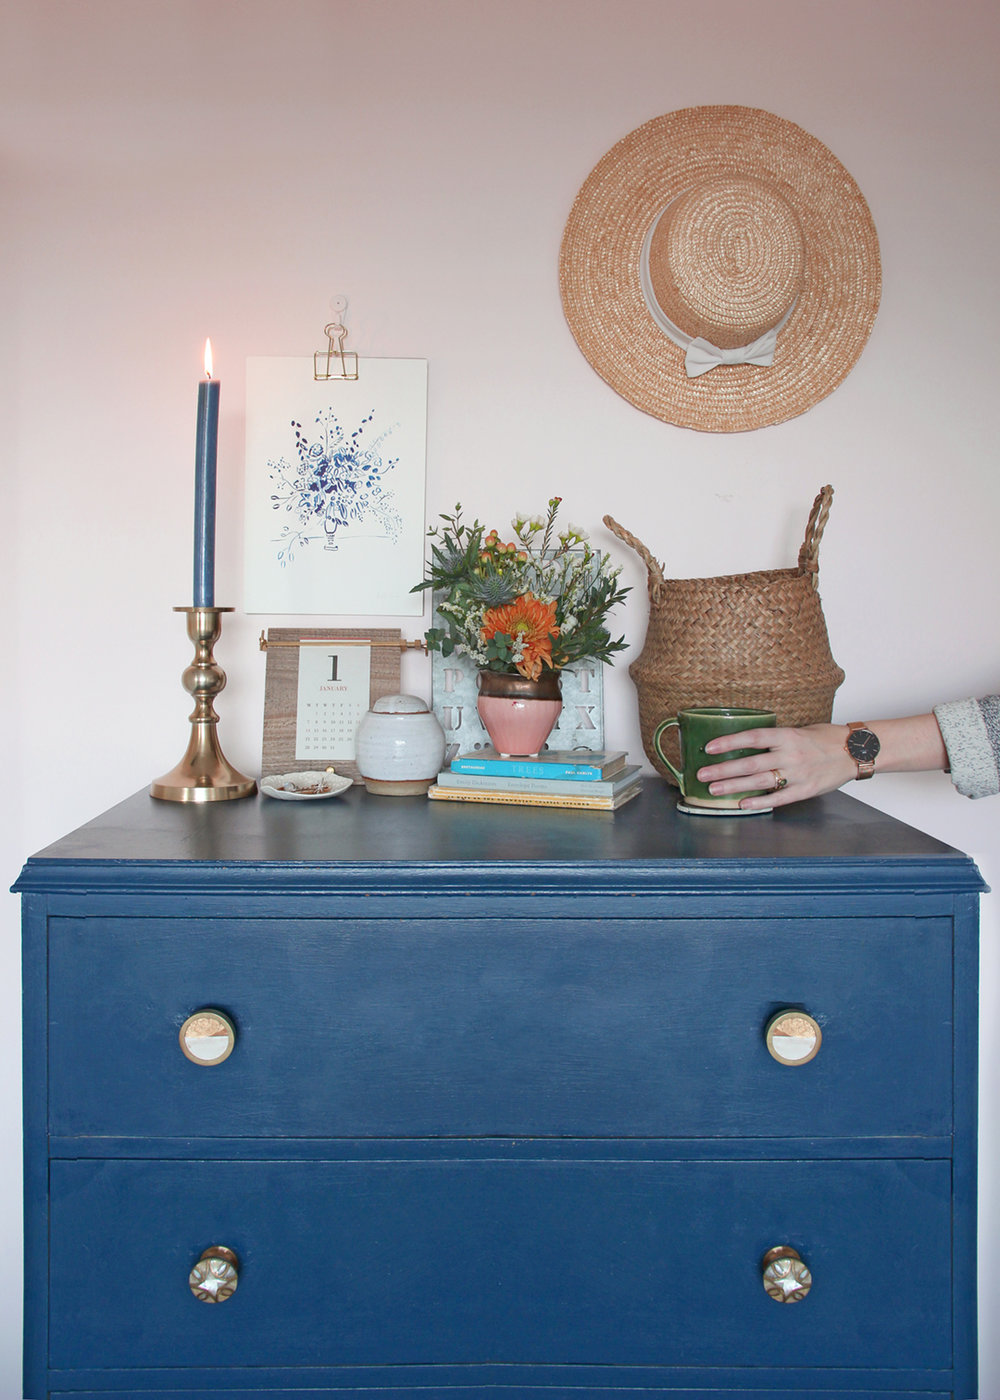 Nancy-Straughan-Interior-Stylist-Blog-How-to-Style-a-Spring-Dresser-Home-Ready.jpg